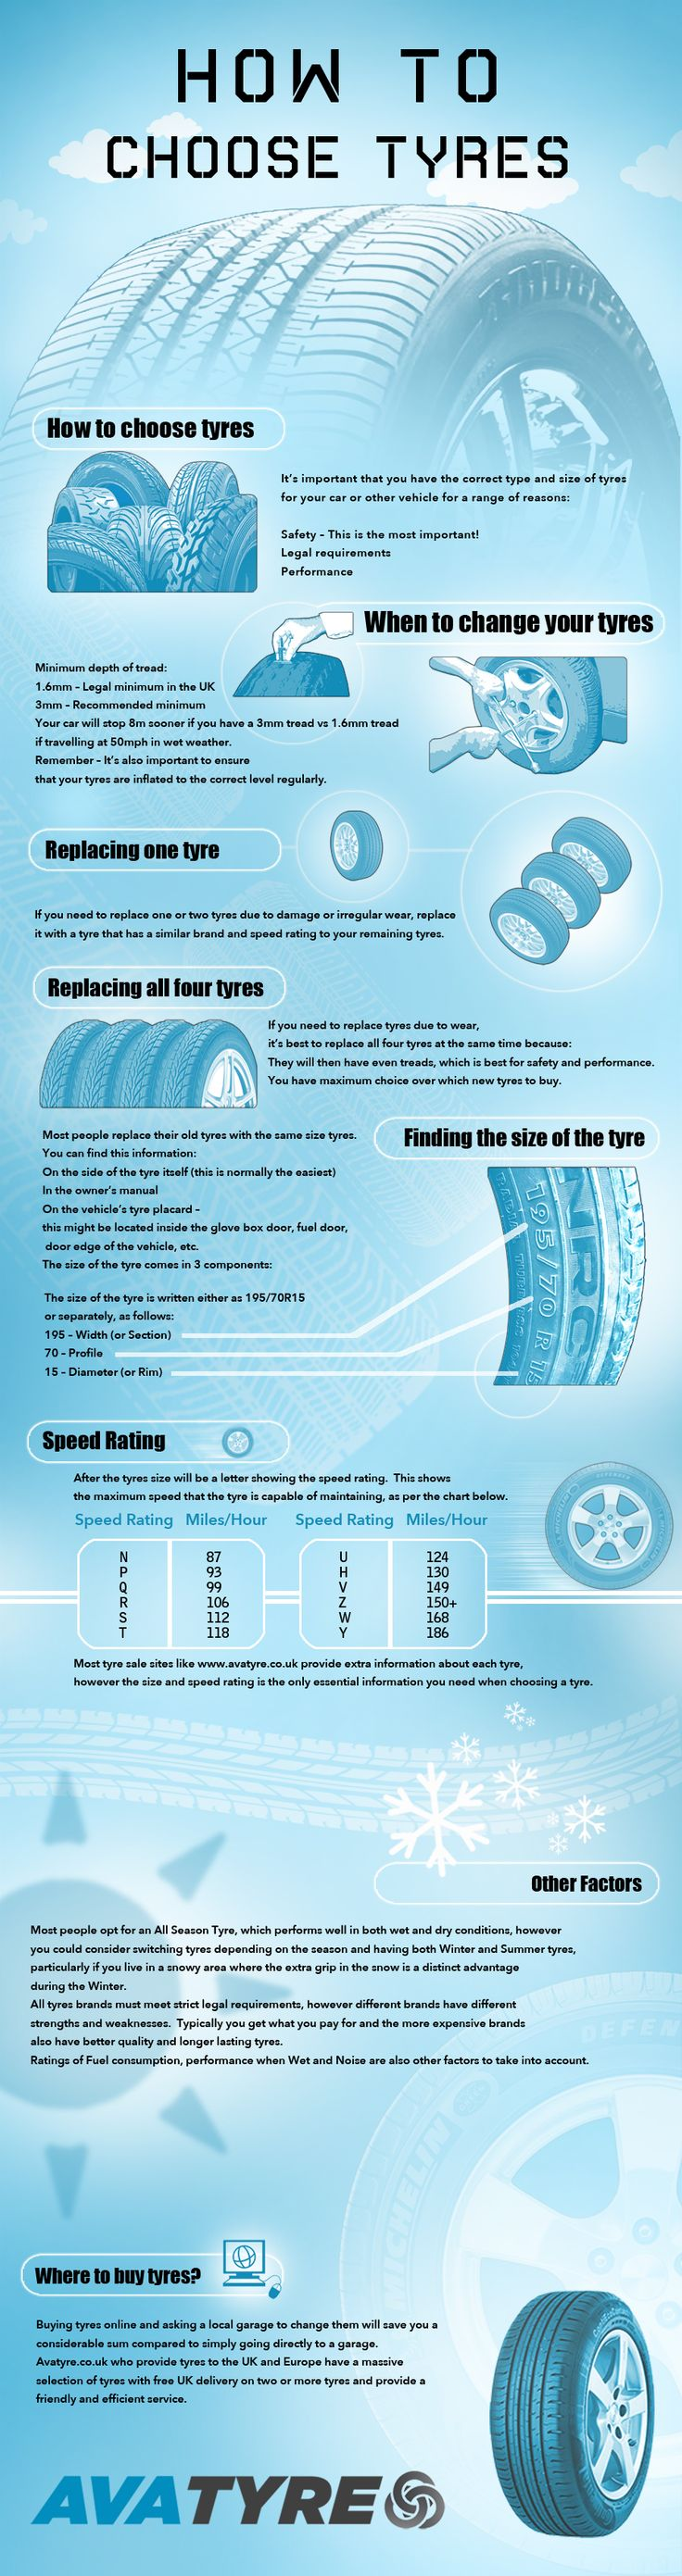 Shop online for the best deals in cheap car tyres UK  -  The infographic shows how easy it can be to get the best price tyres online.  Try Avatyre's easy to use website at http://avatyre.co.uk/ and see how much you could be saving.